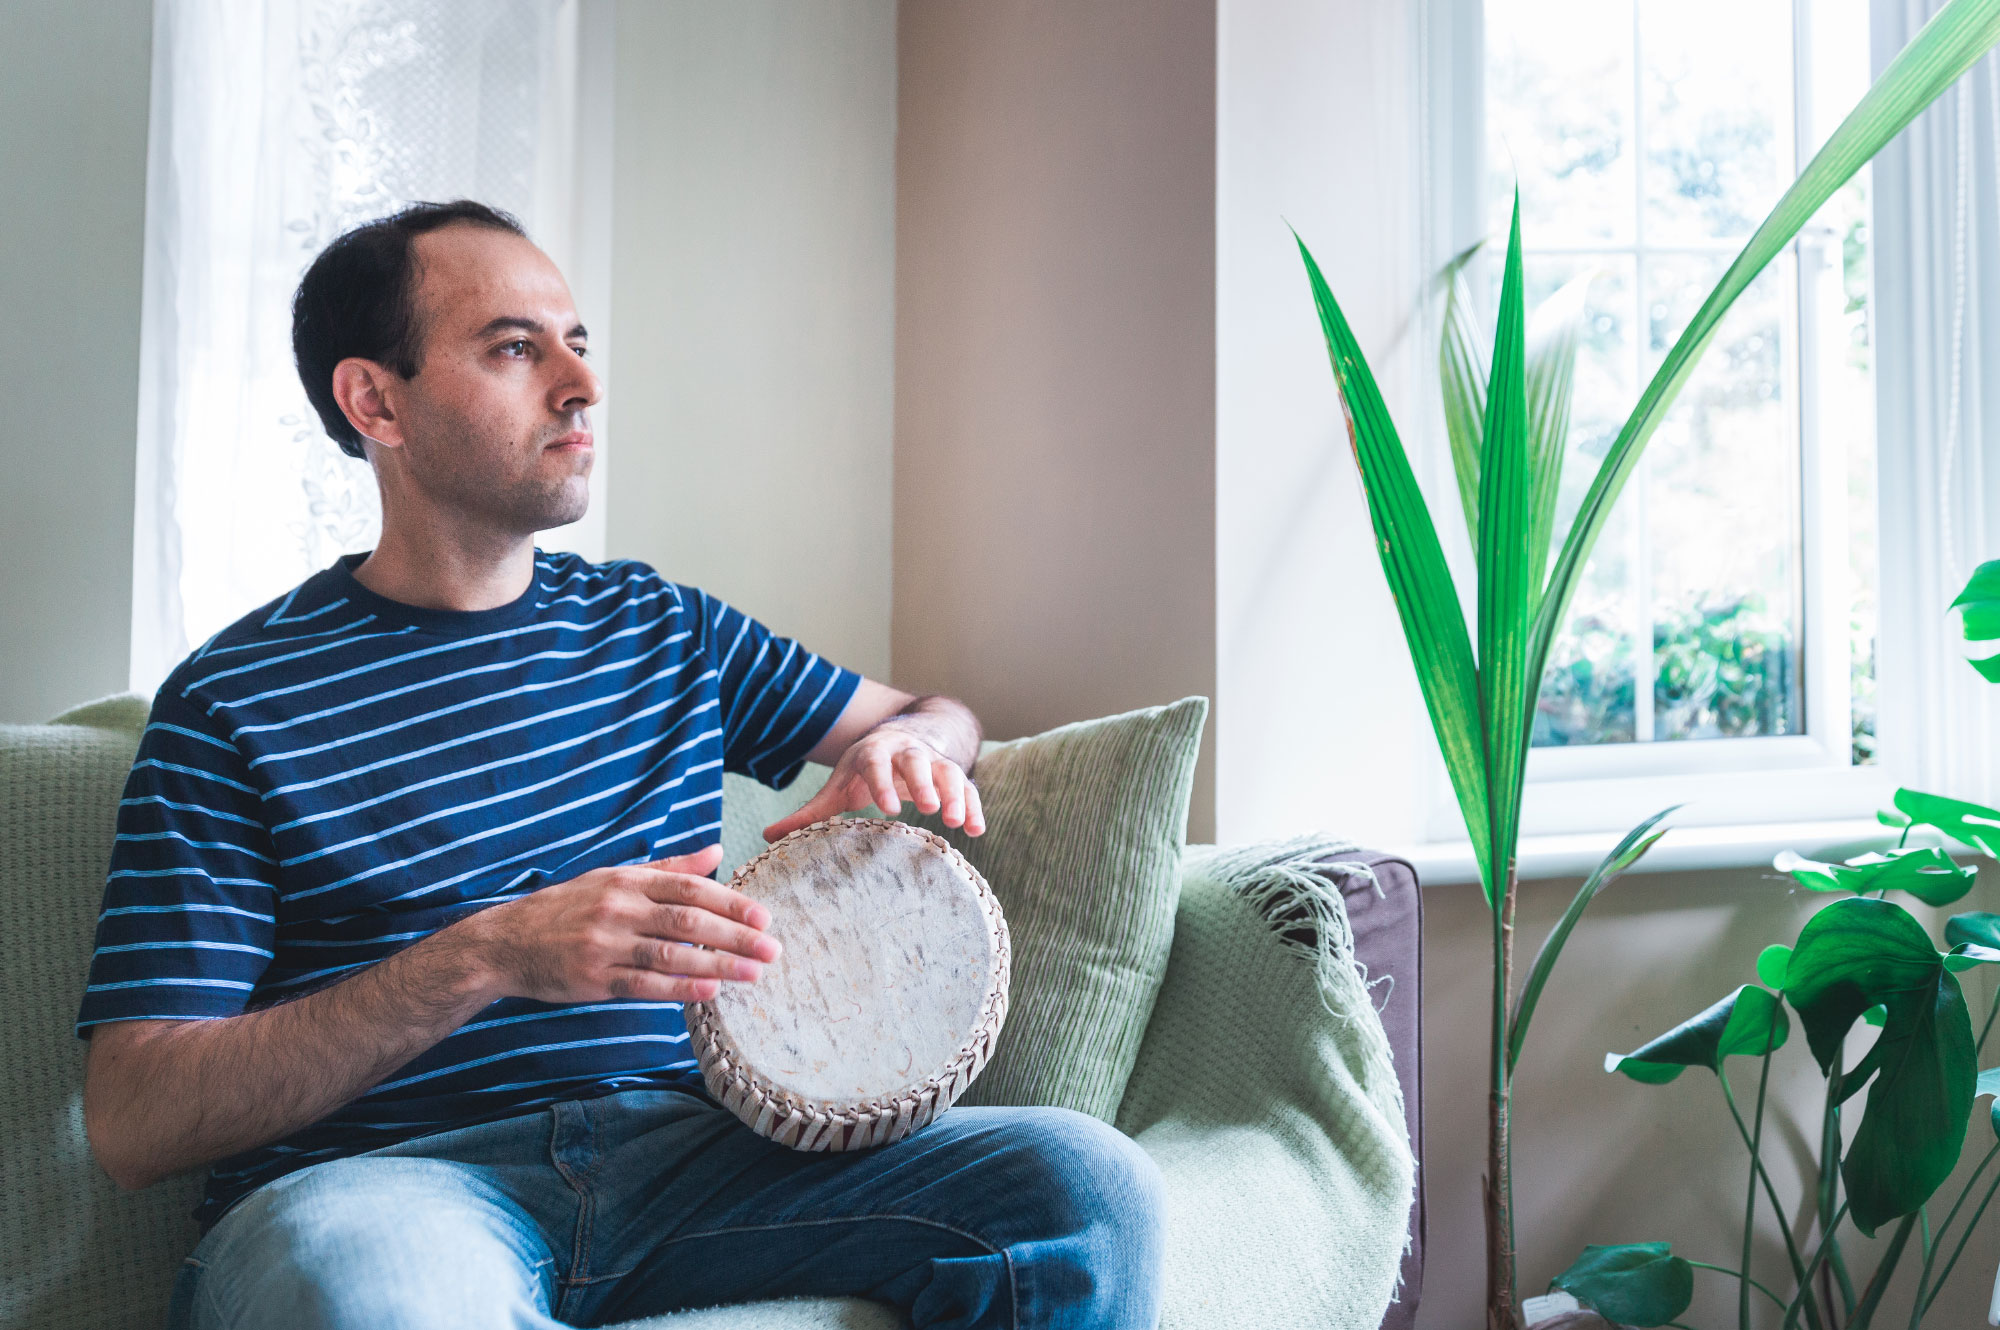 Caucher Birkar plays self-taught Kurdish beats on a small Thai drum in his family home near Cambridge, England